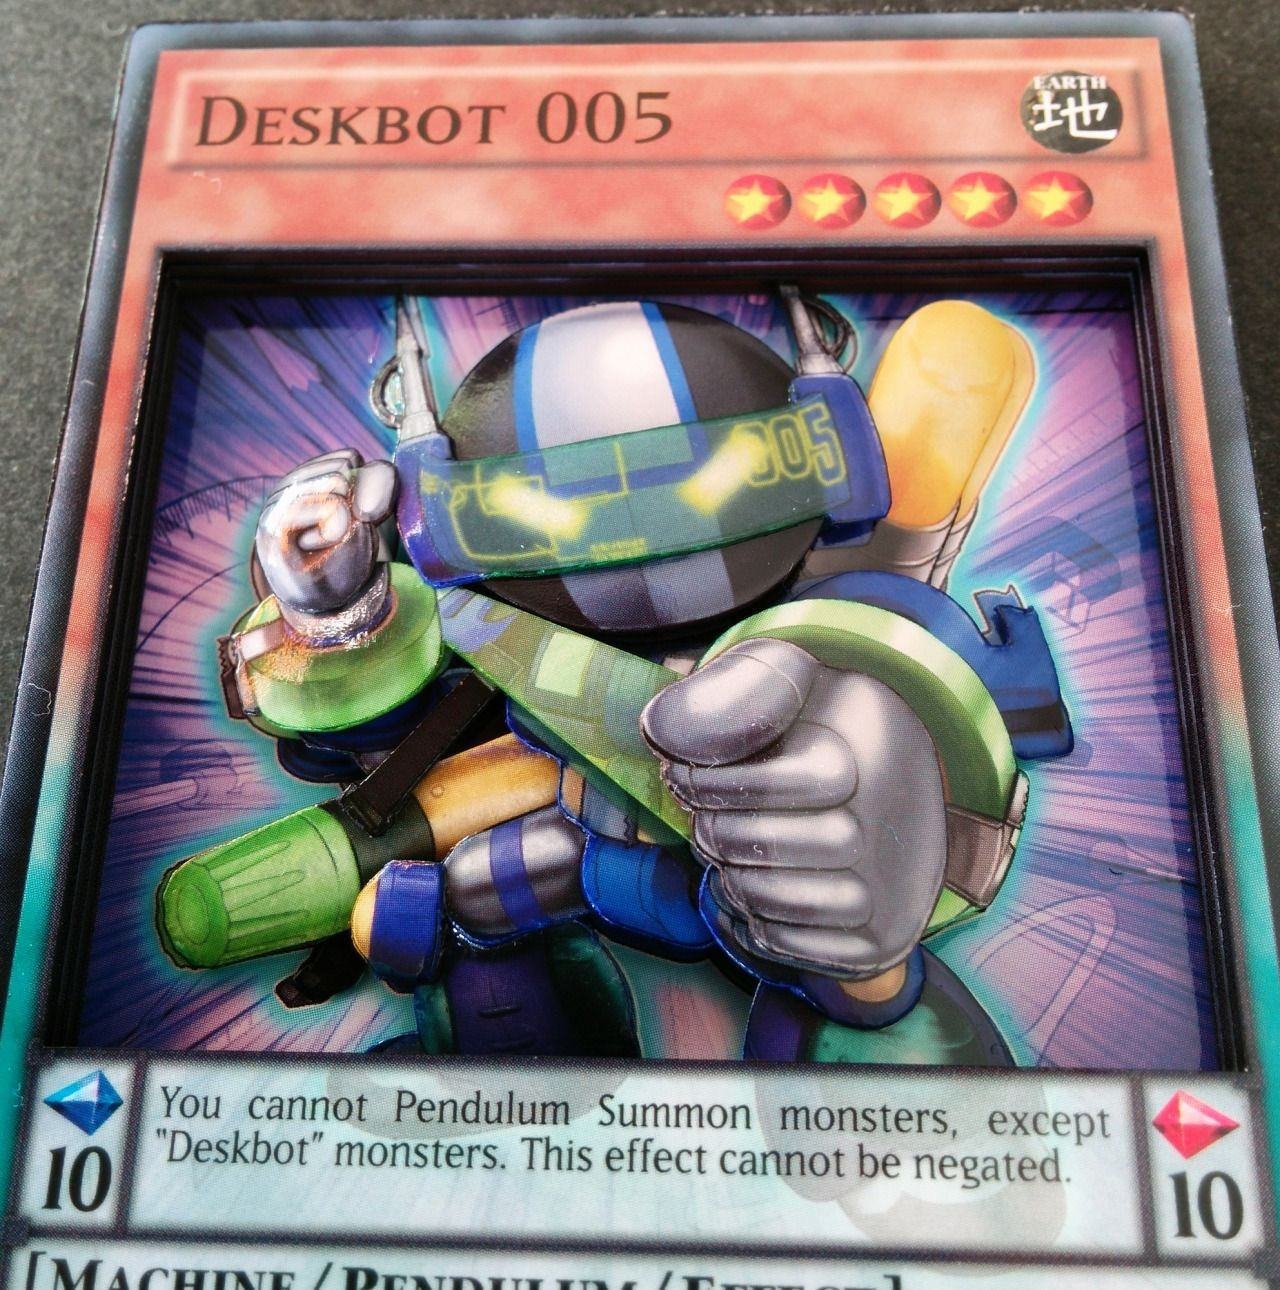 Yugioh Papercraft Deskbot 005 Check Out My Shop or See More